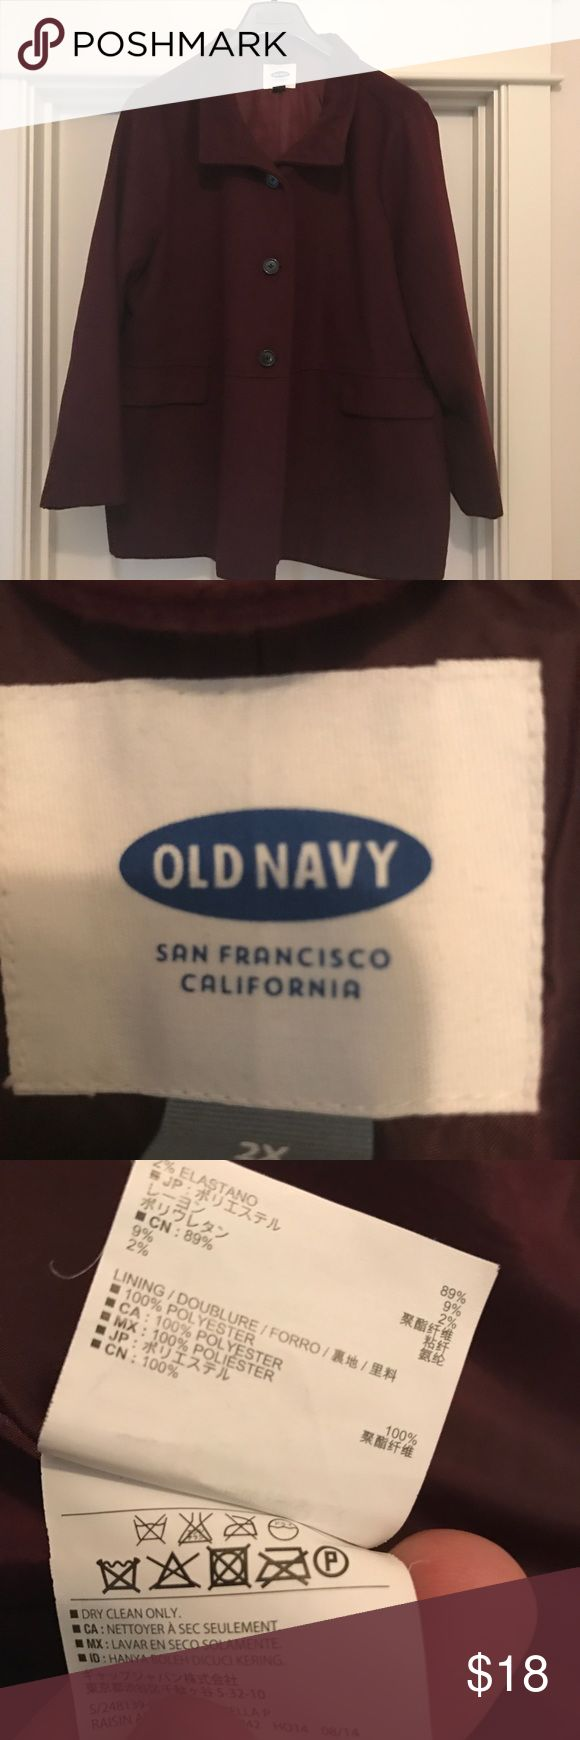 🎉FLASH SALE🎉 Old Navy Pea Coat Plus Size 2X Old Navy Women's Plus Size pea coat!  Maroon in color size 2X.   It's in great condition.  The pockets in the jacket are for looks only!  ❤️❤️. Love this one!  It won't last long! Old Navy Jackets & Coats Pea Coats